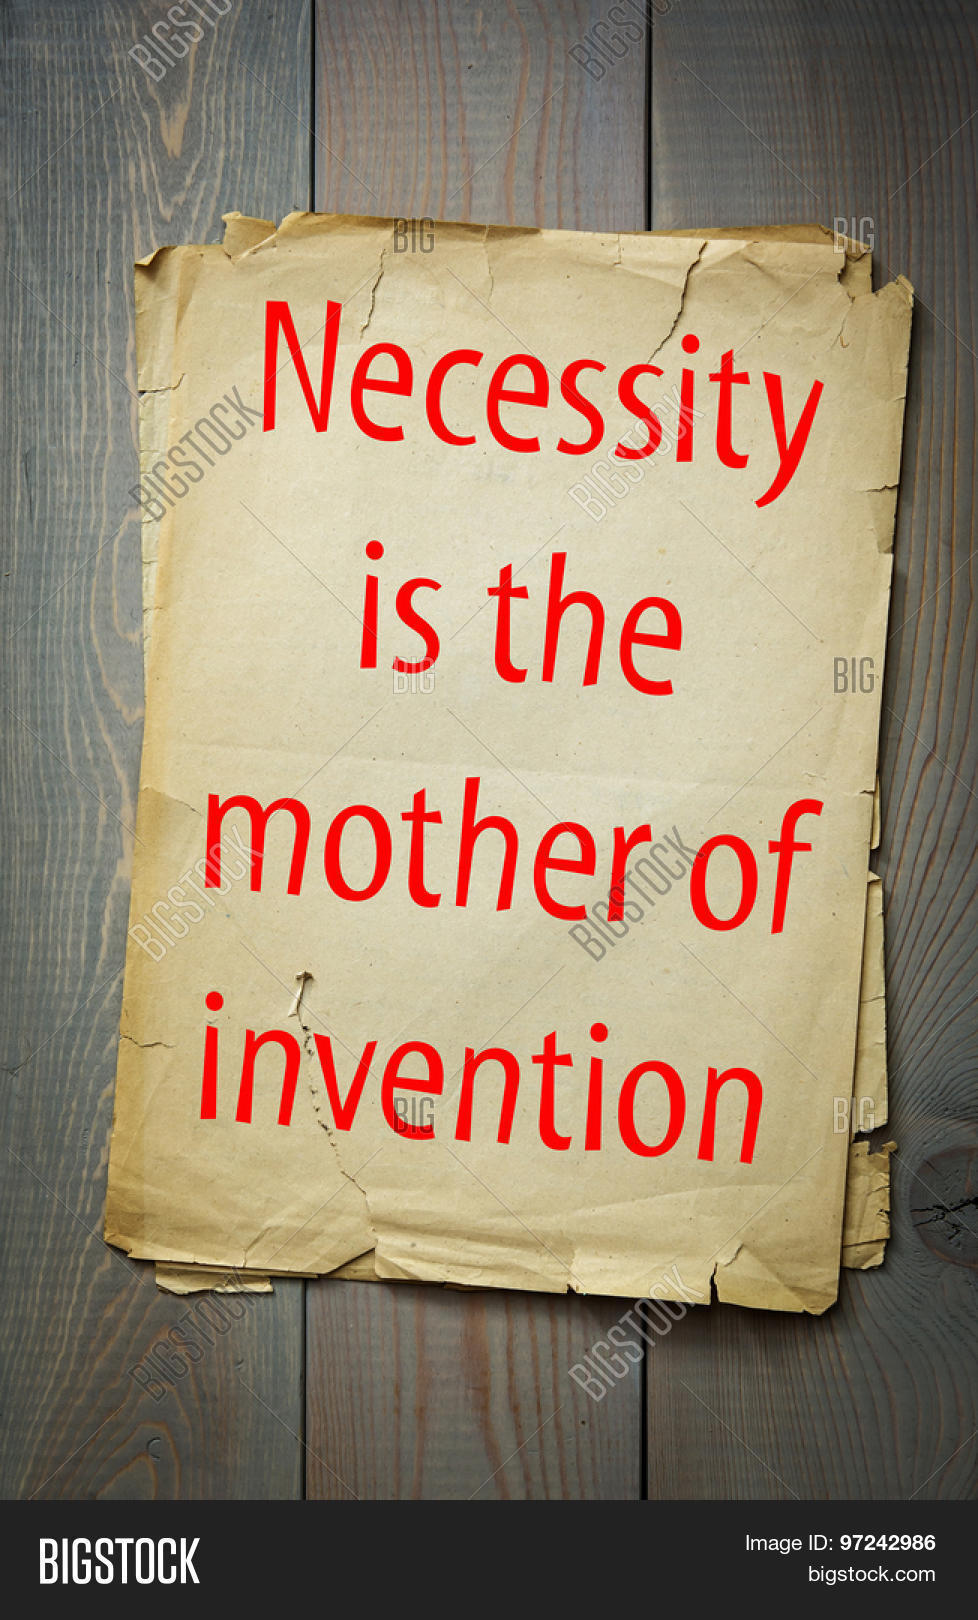 english proverb necessity mother image photo bigstock english proverb necessity is the mother of invention 50 most important english proverbs series